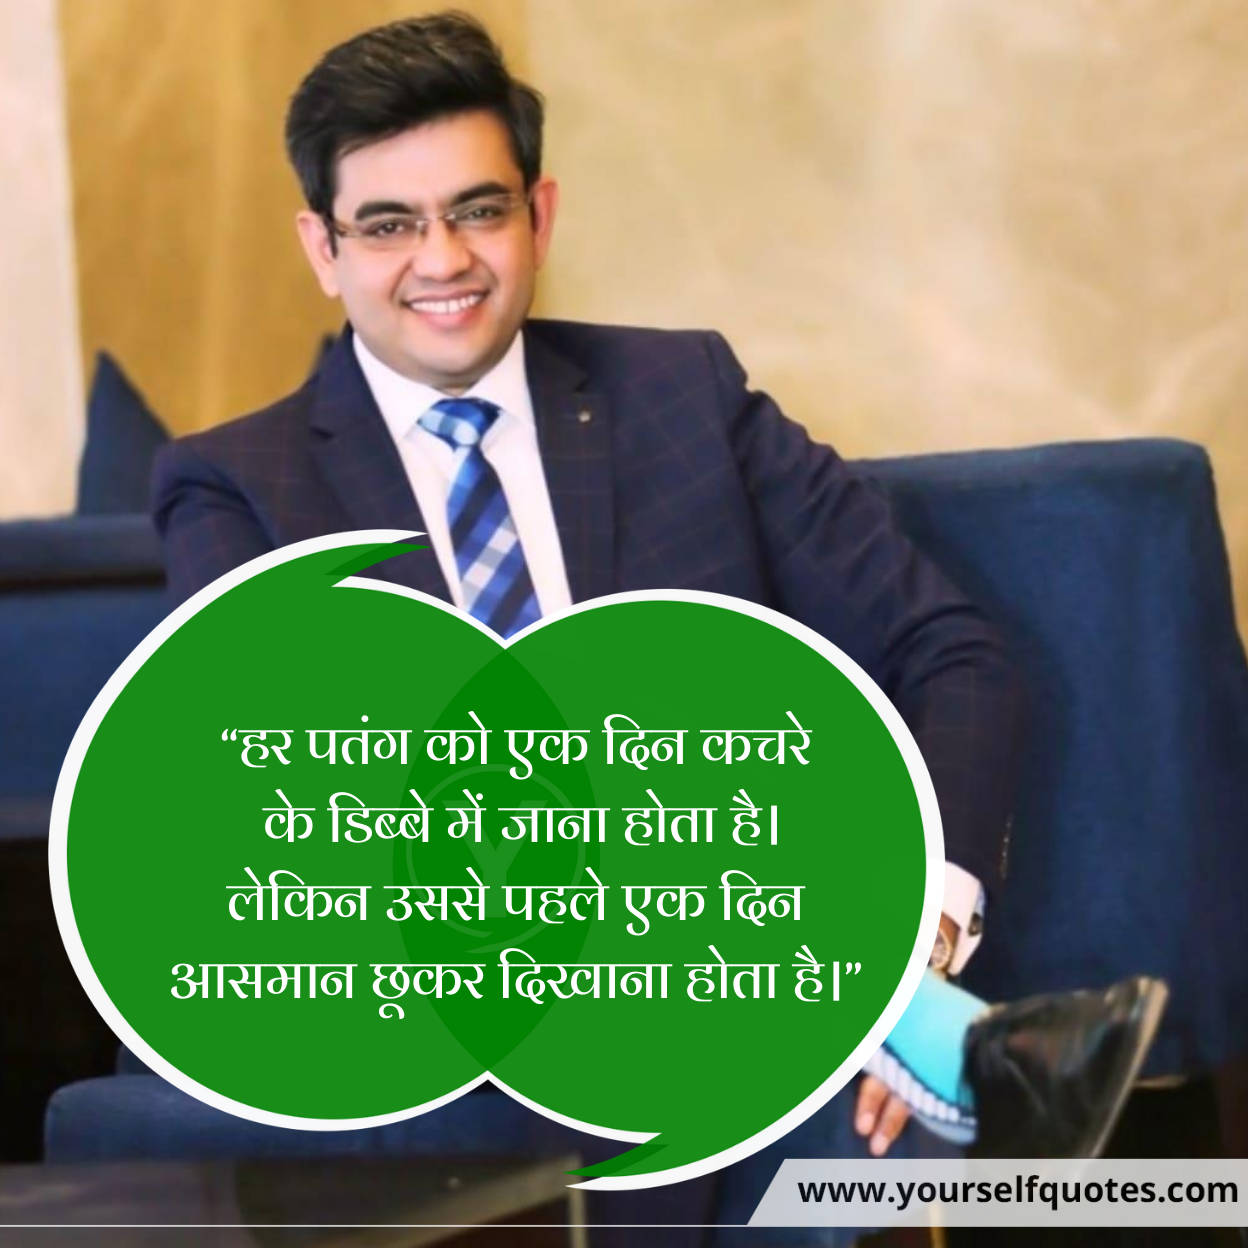 Positive Thinking Quotes by Sonu Sarma